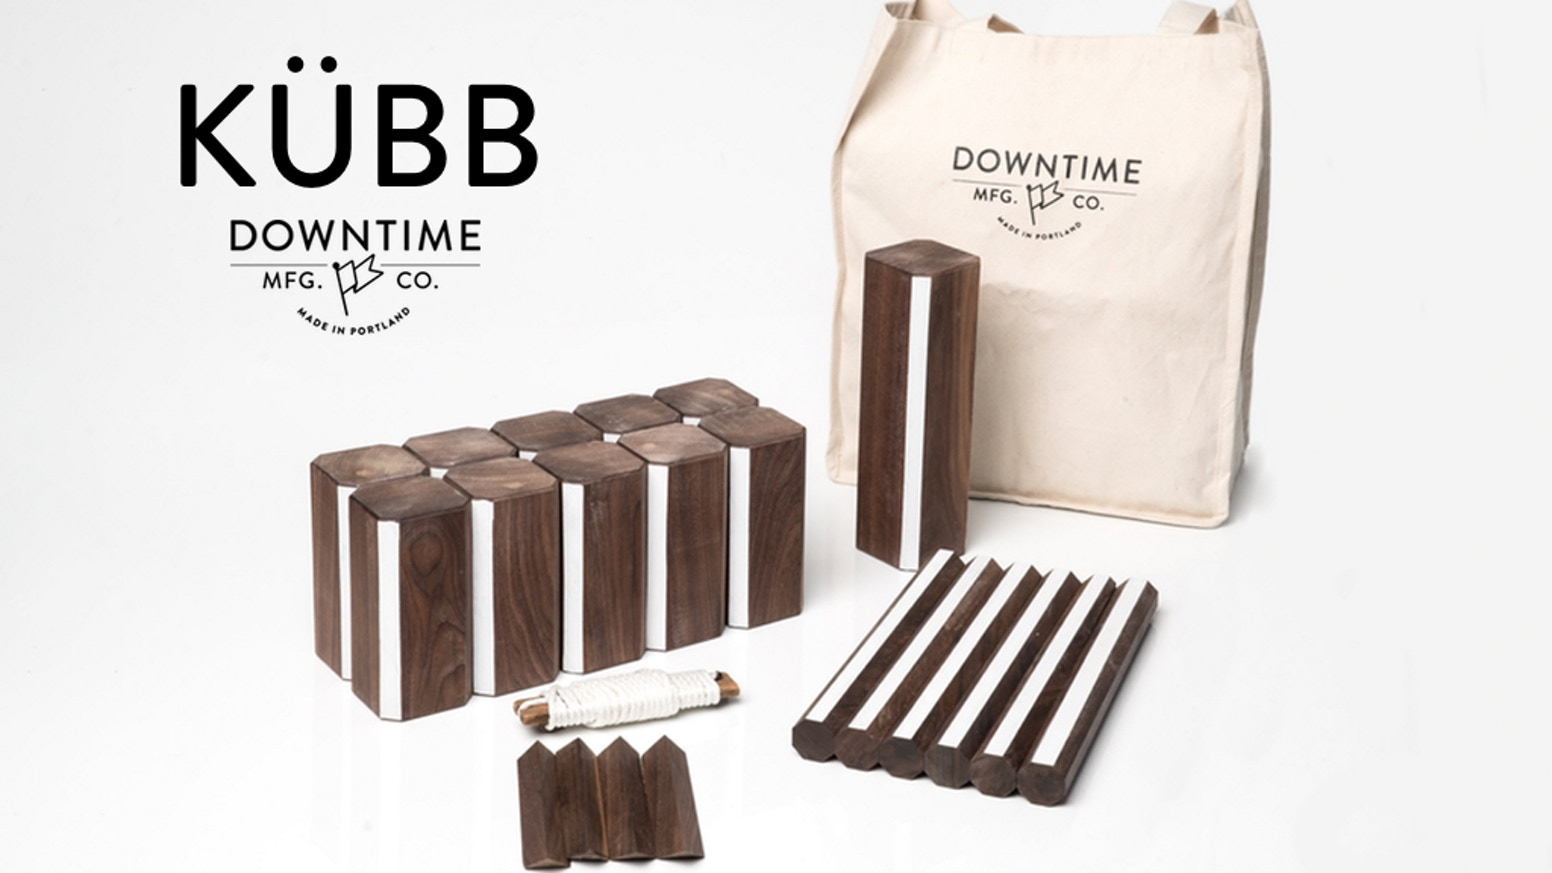 Downtime Manufacturing Co Is Redesigning The Way You Think About Lawn Gaming Yes Starting With Kubb